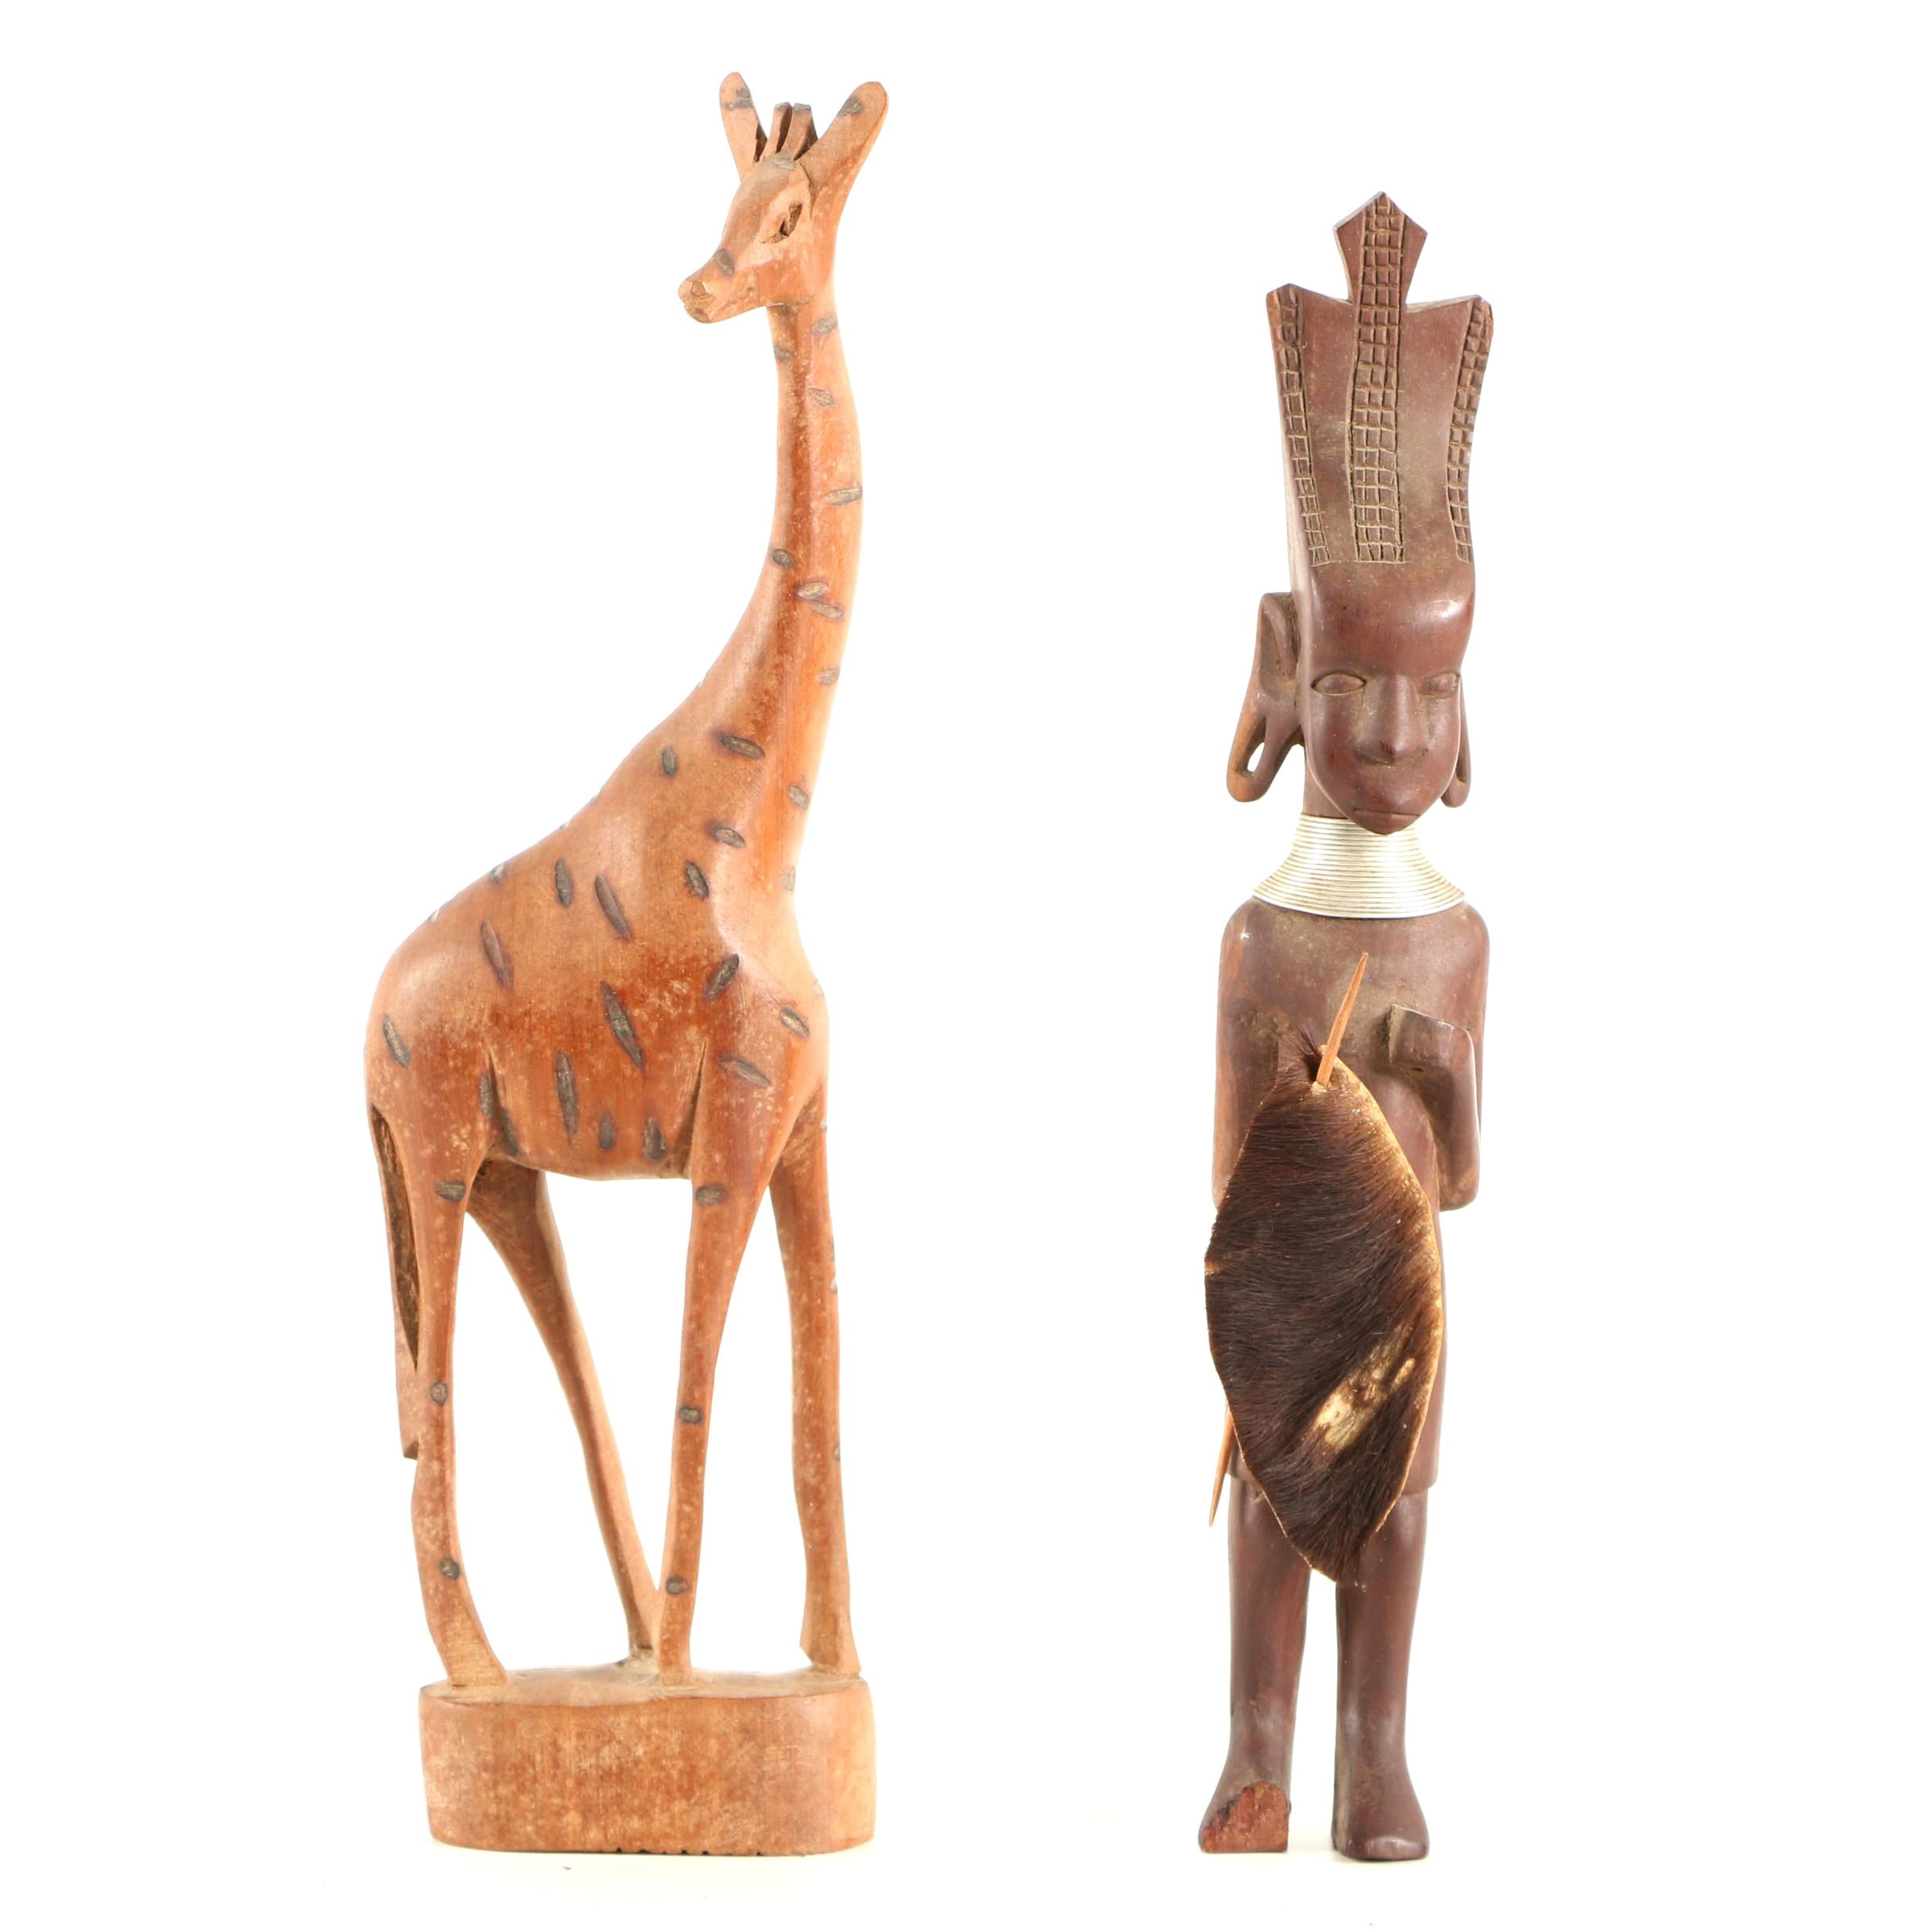 Carved Wood Sculptures of Giraffe and Kenyan Style Figure